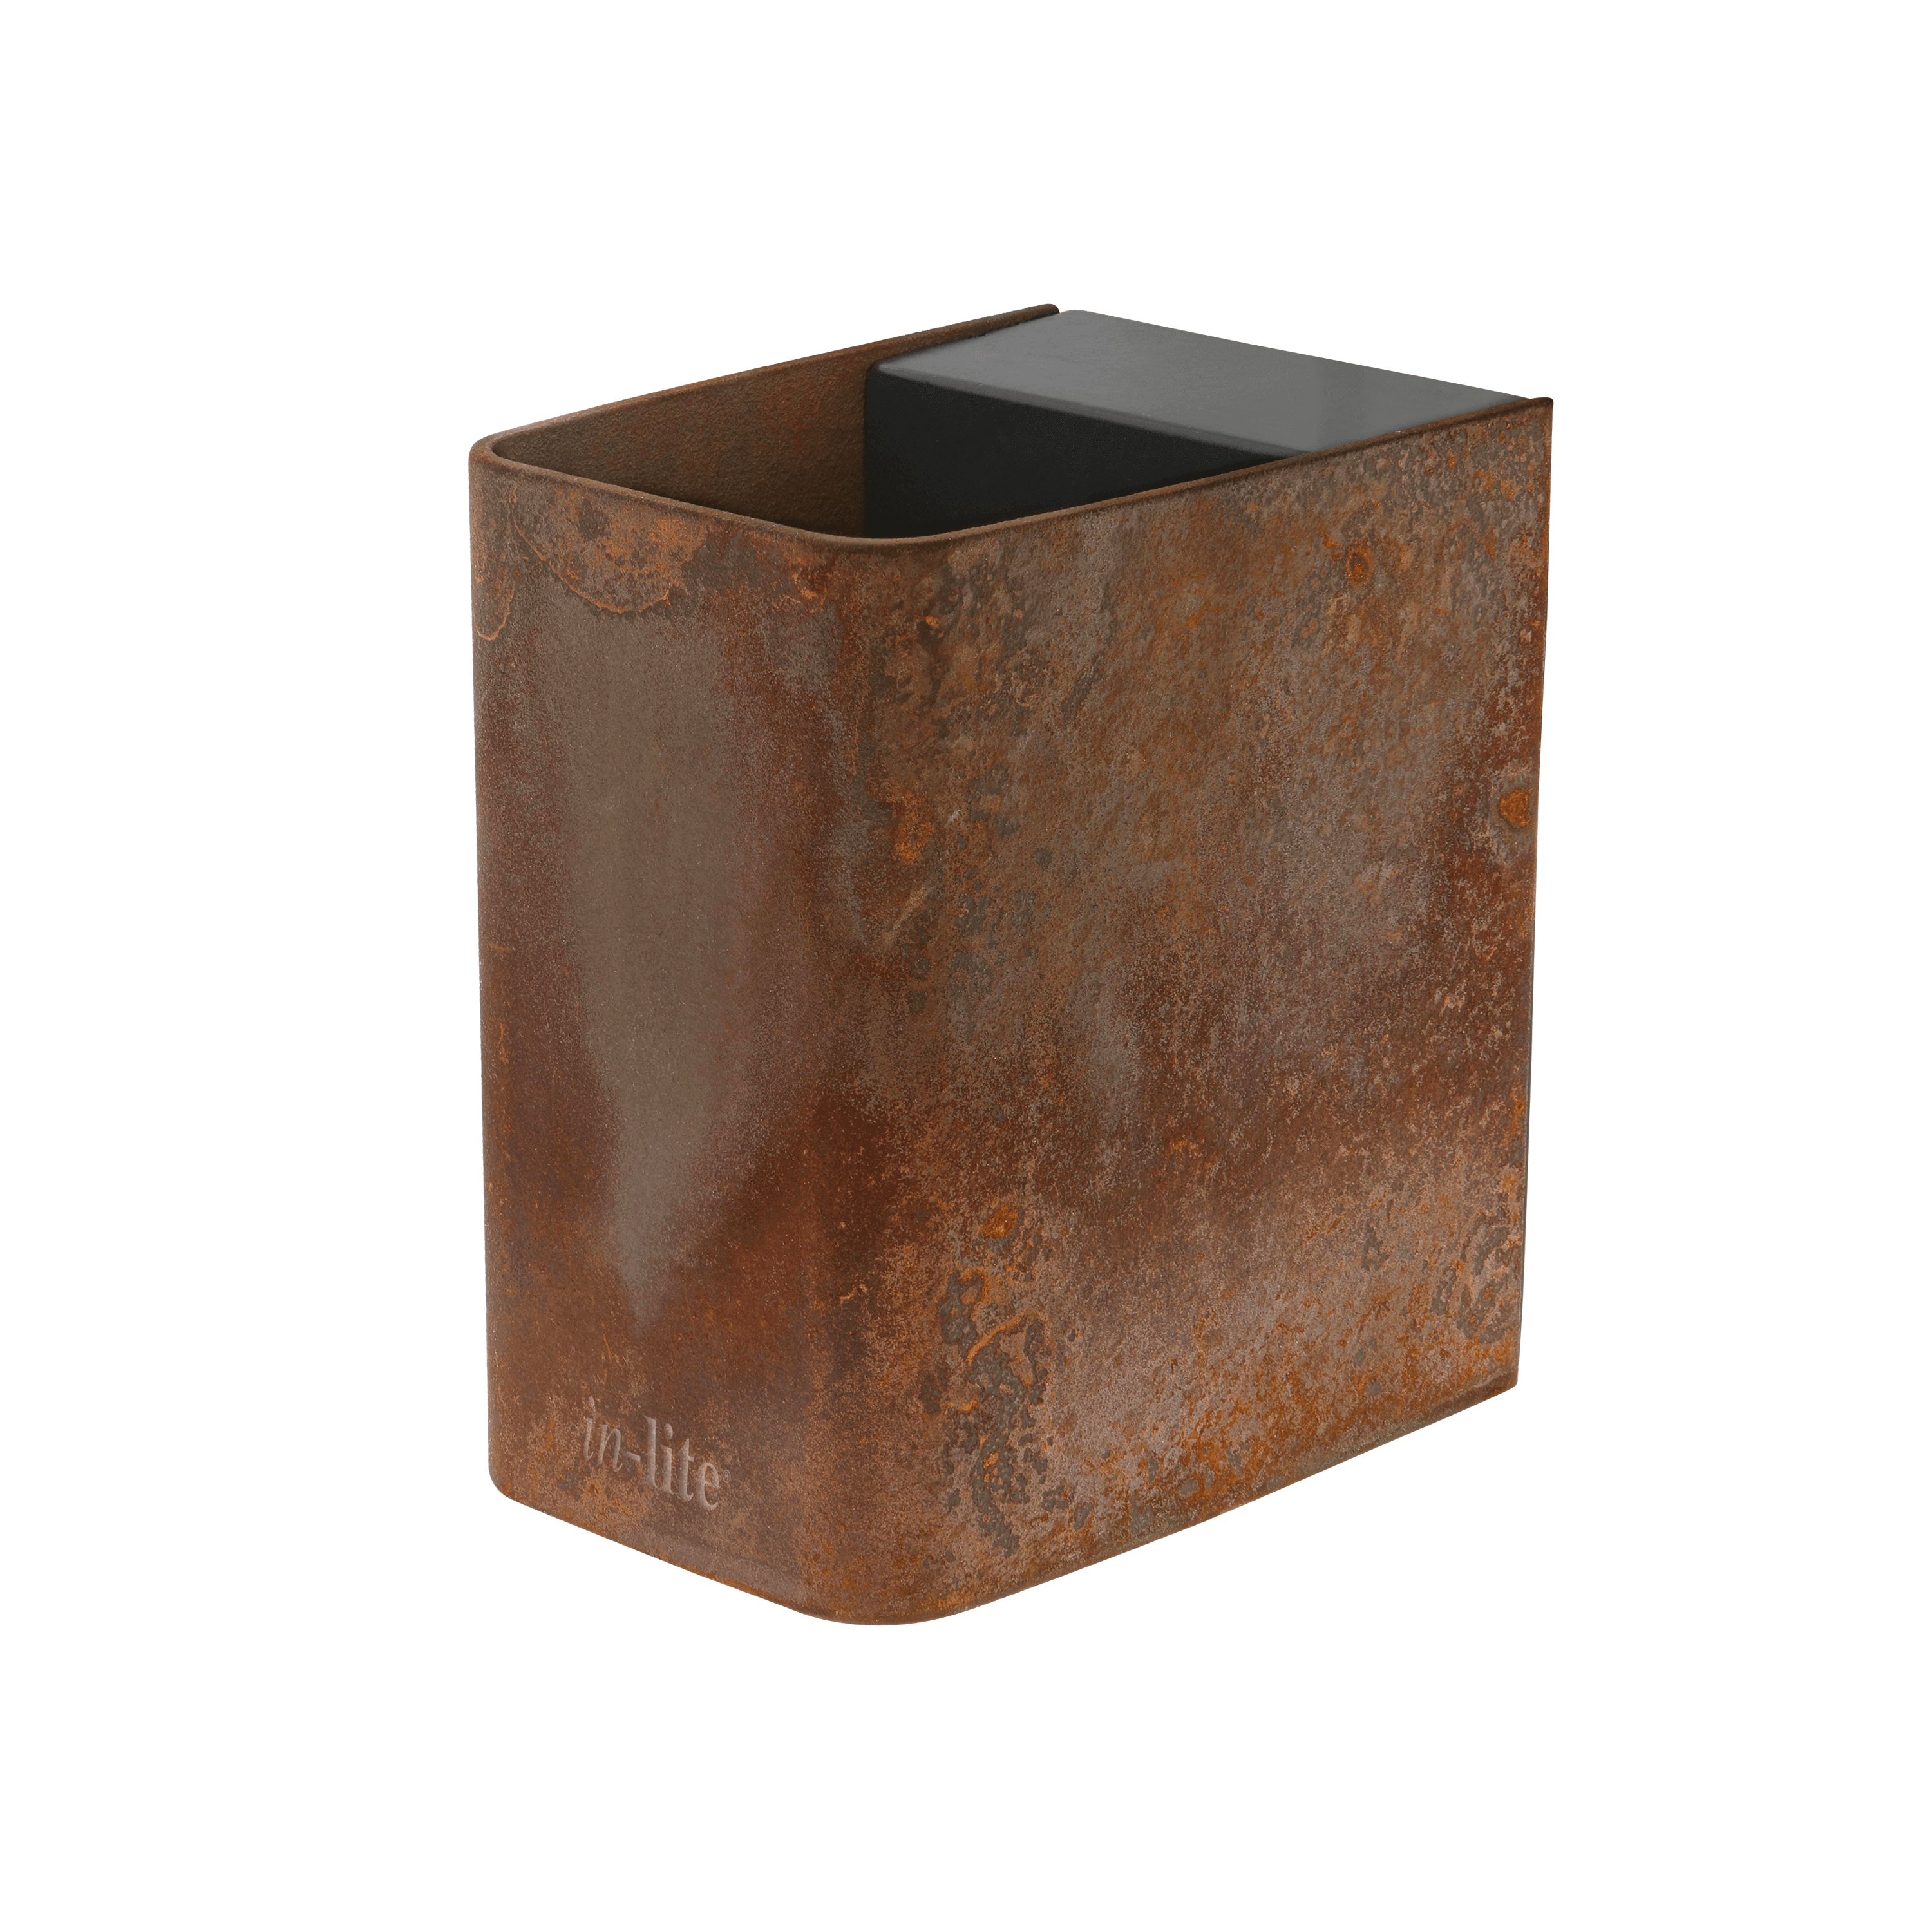 in lite | Ace Down Corten